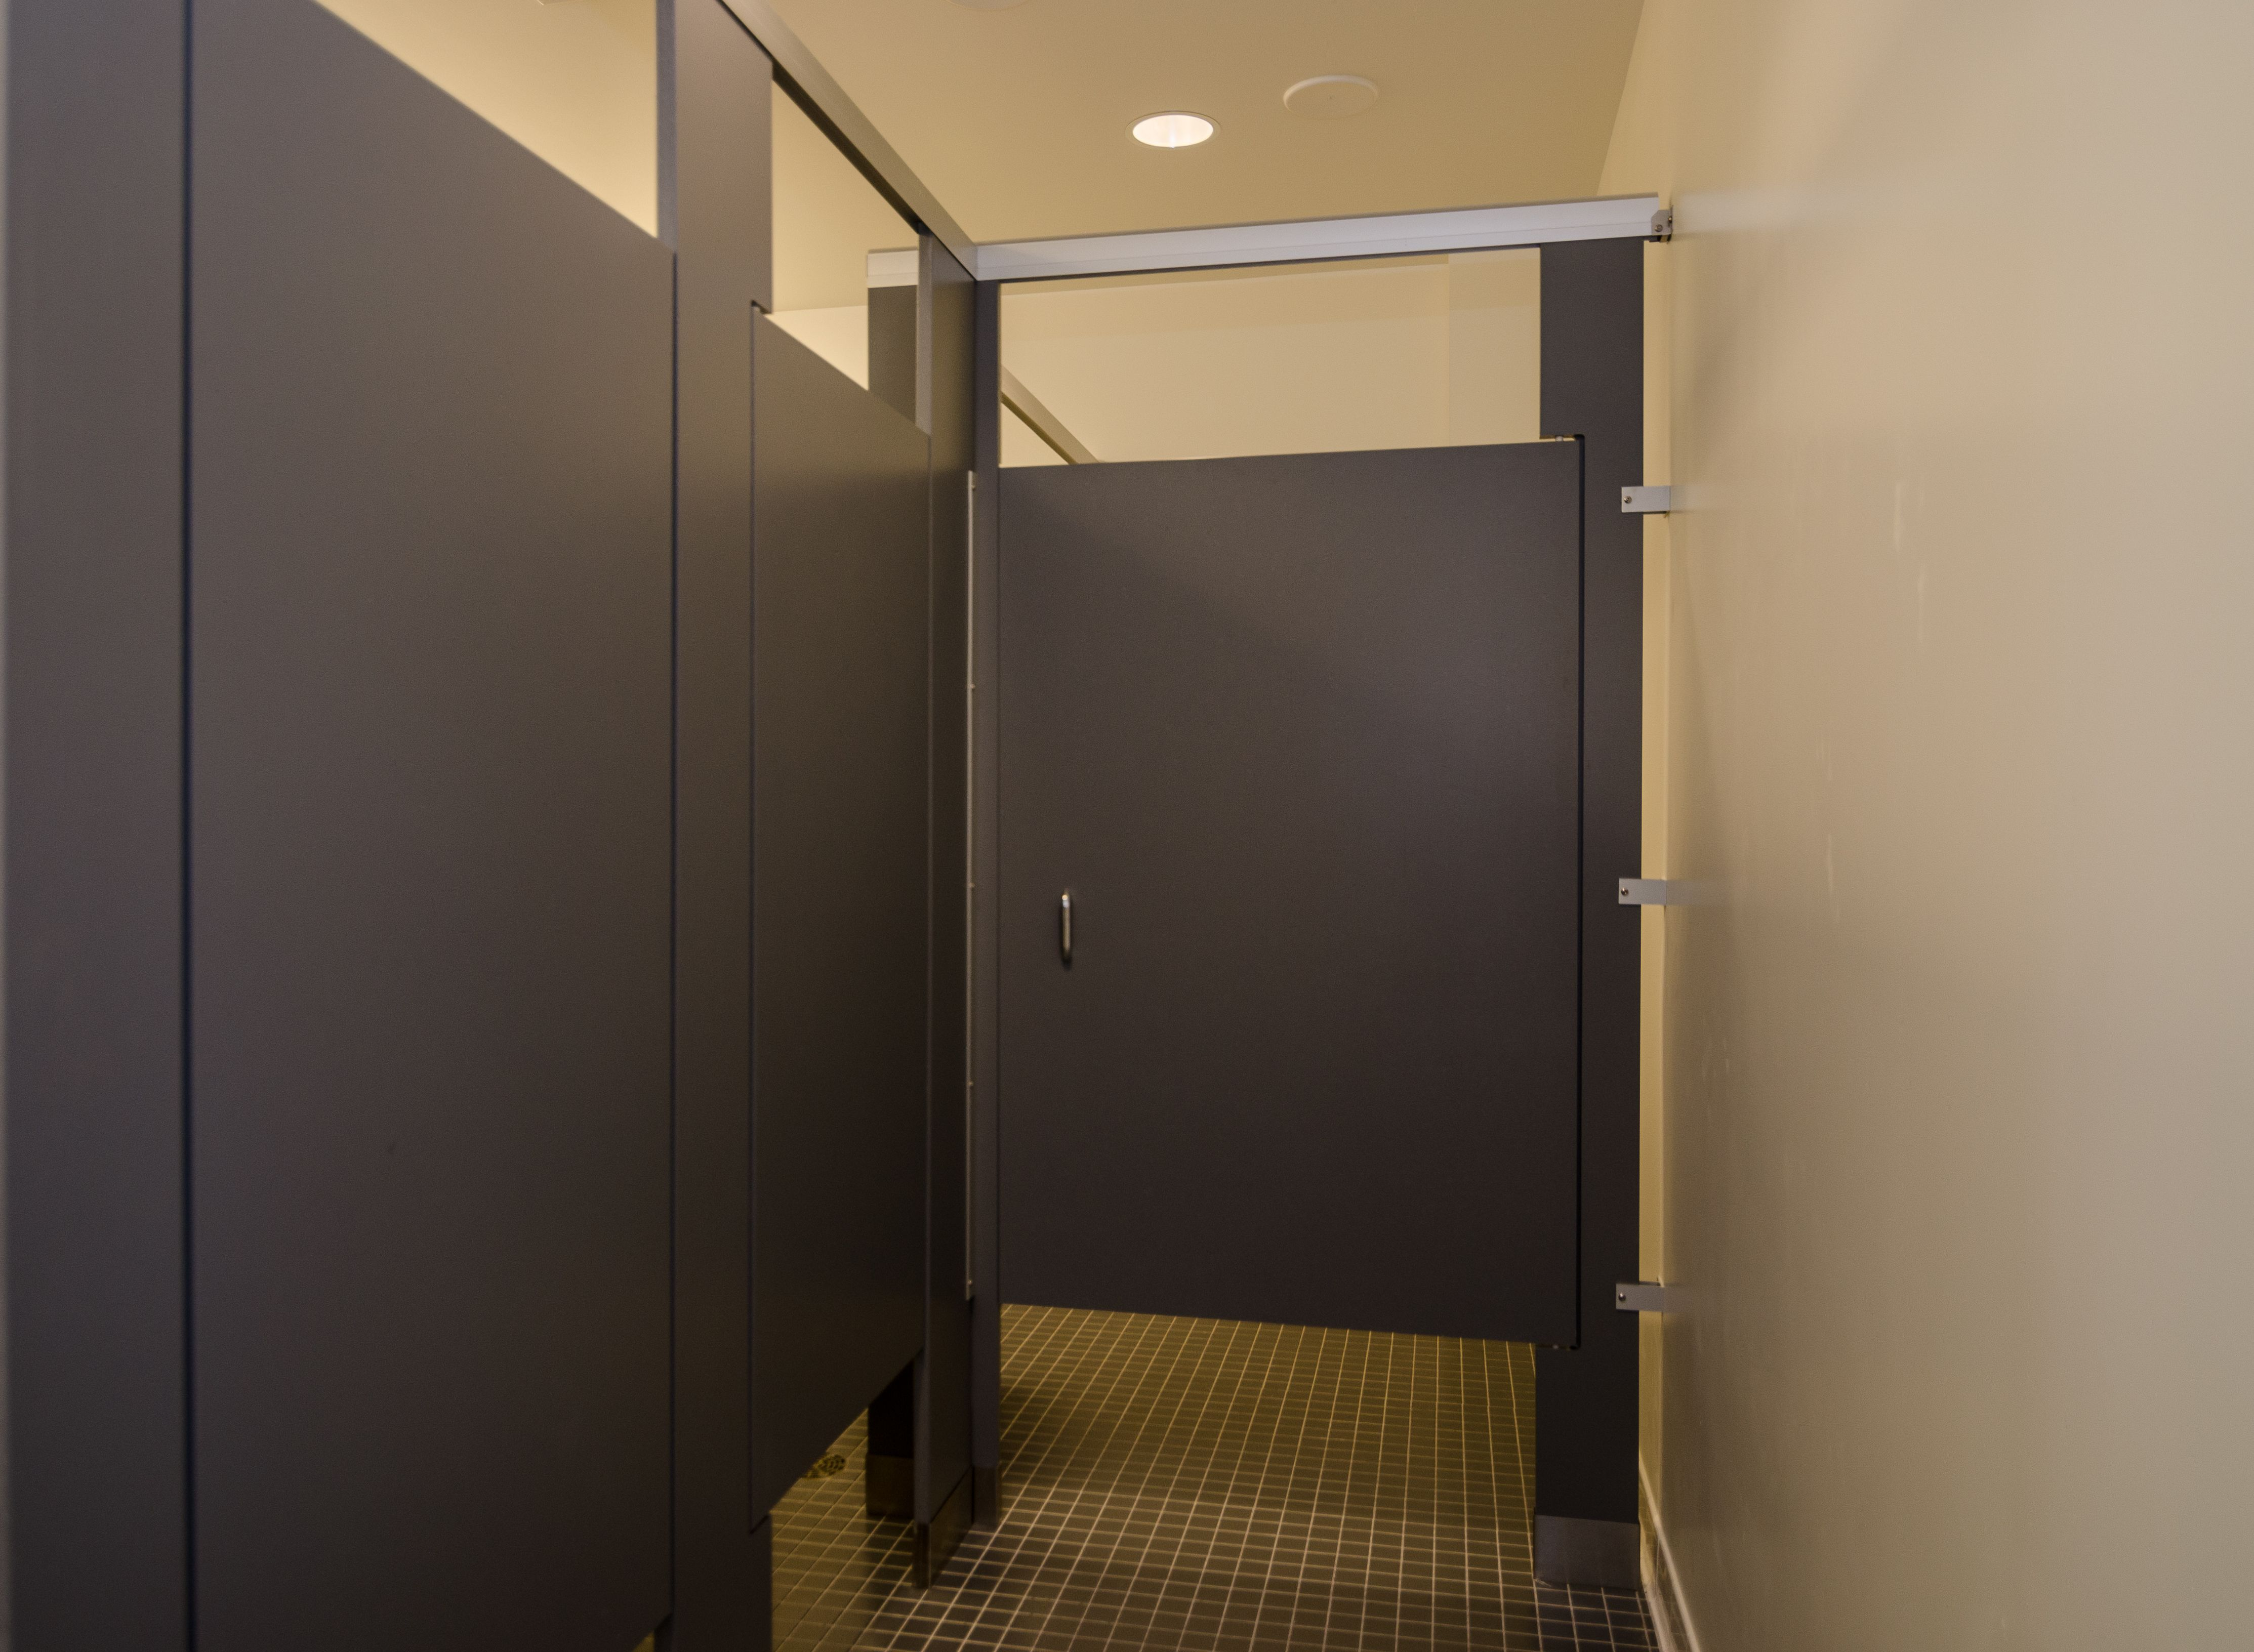 Ironwood Manufacturing zero sightline bathroom doors and high privacy toilet partitions. Beautiful clean & Ironwood Manufacturing zero sightline bathroom doors and high ... pezcame.com